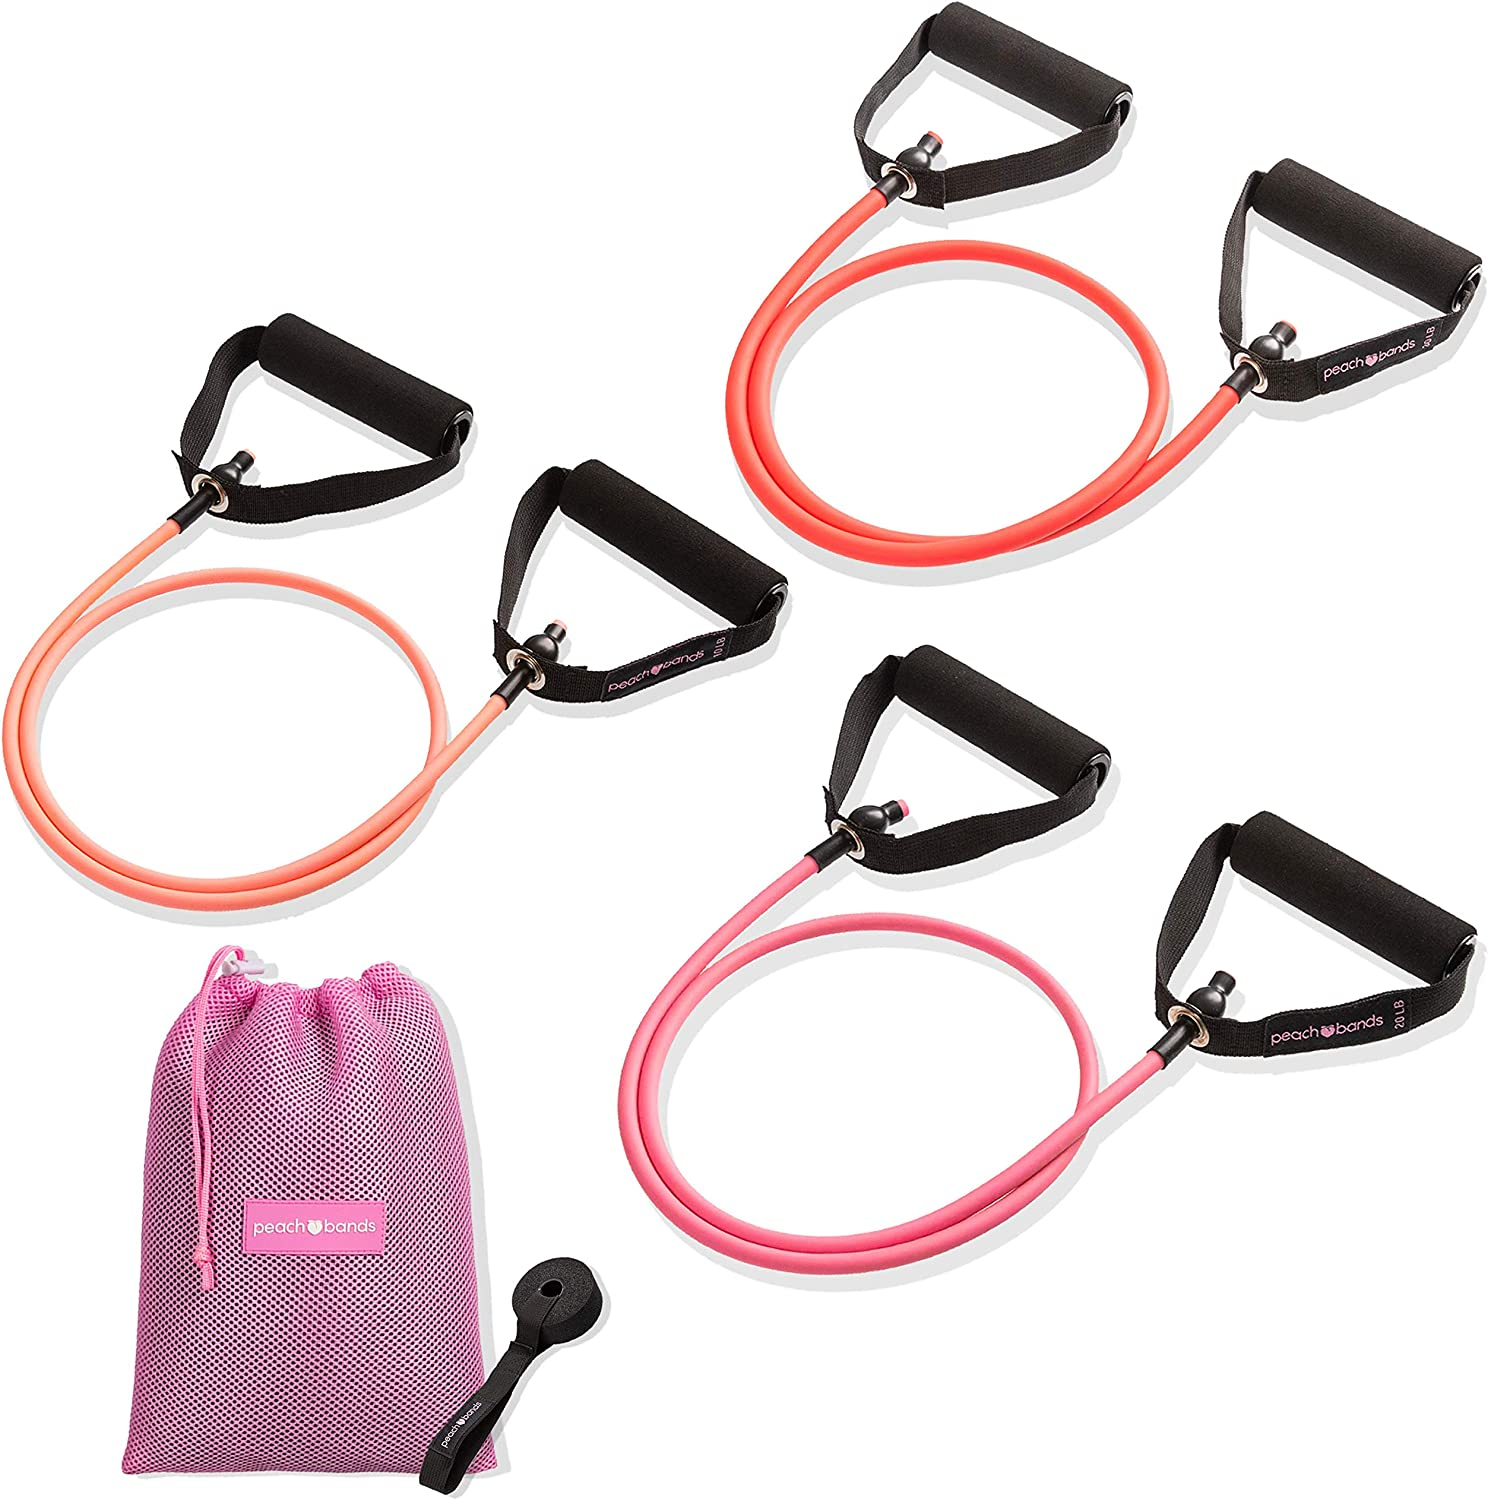 Peach Bands resistance bands